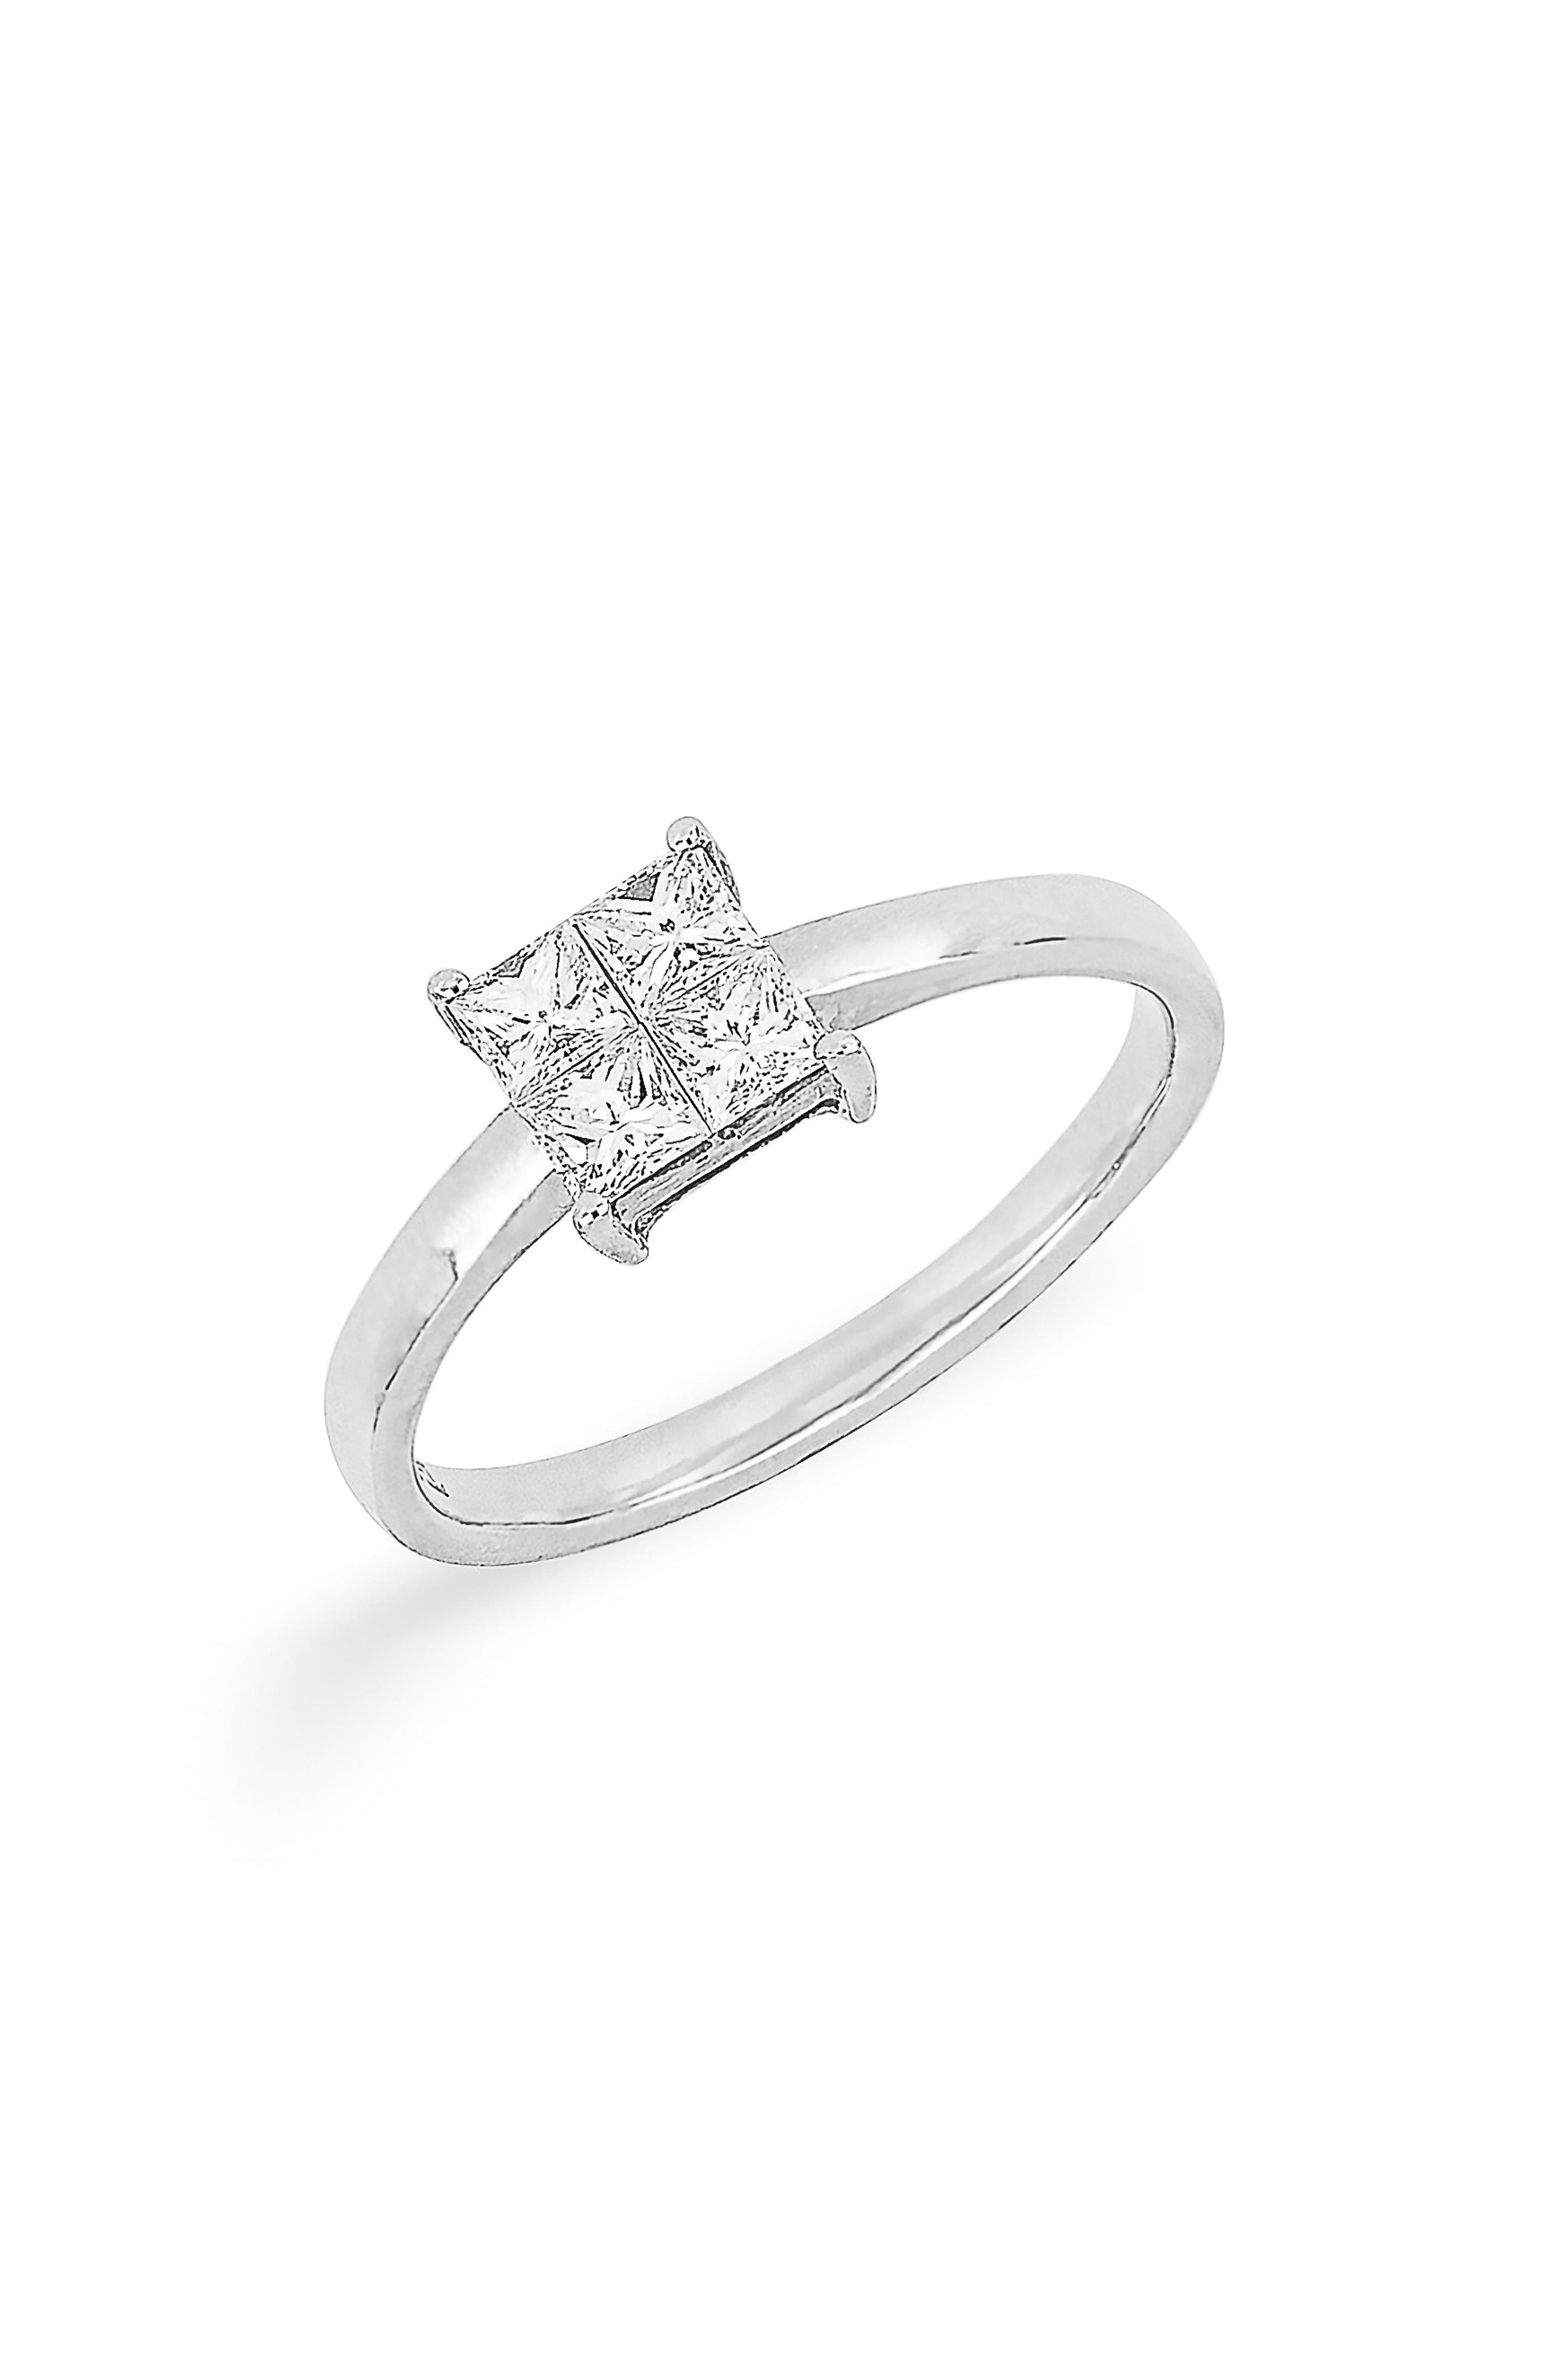 Main Image - Bony Levy Princess Cut Diamond Ring (Nordstrom Exclusive)